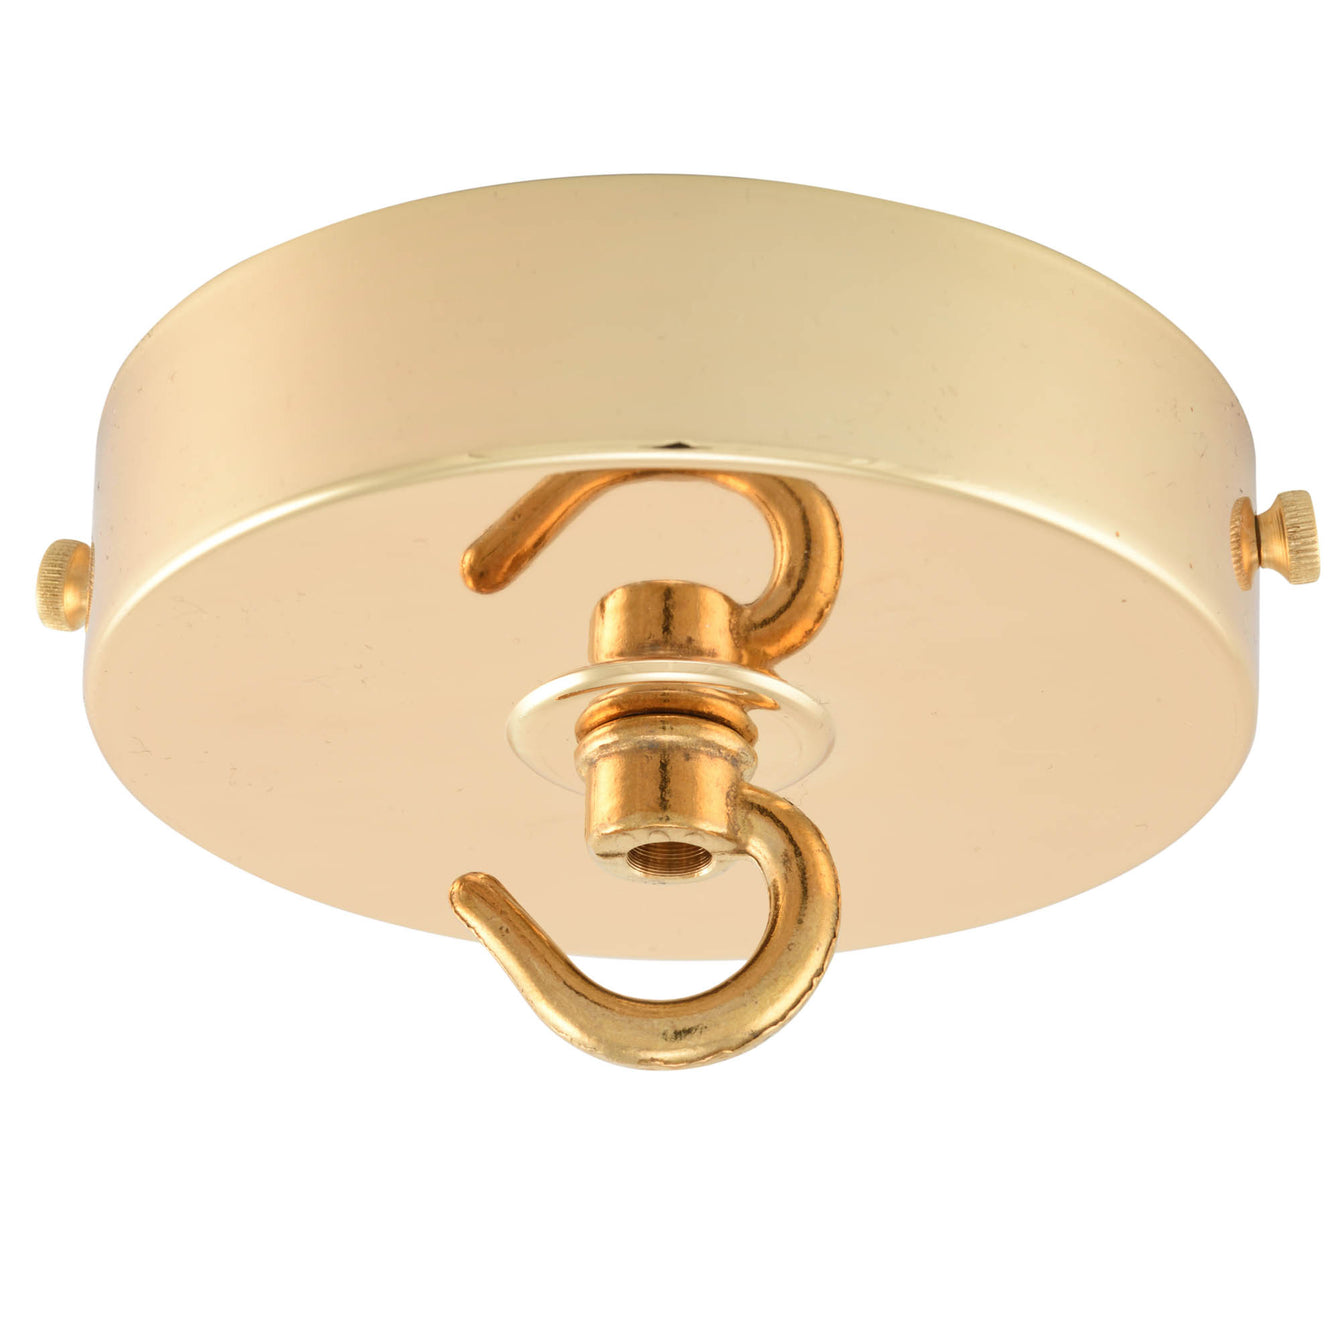 ElekTek 100mm Diameter Flat Top Ceiling Rose with Strap Bracket and Hook Metallic Finishes Powder Coated Colours Antique Brass